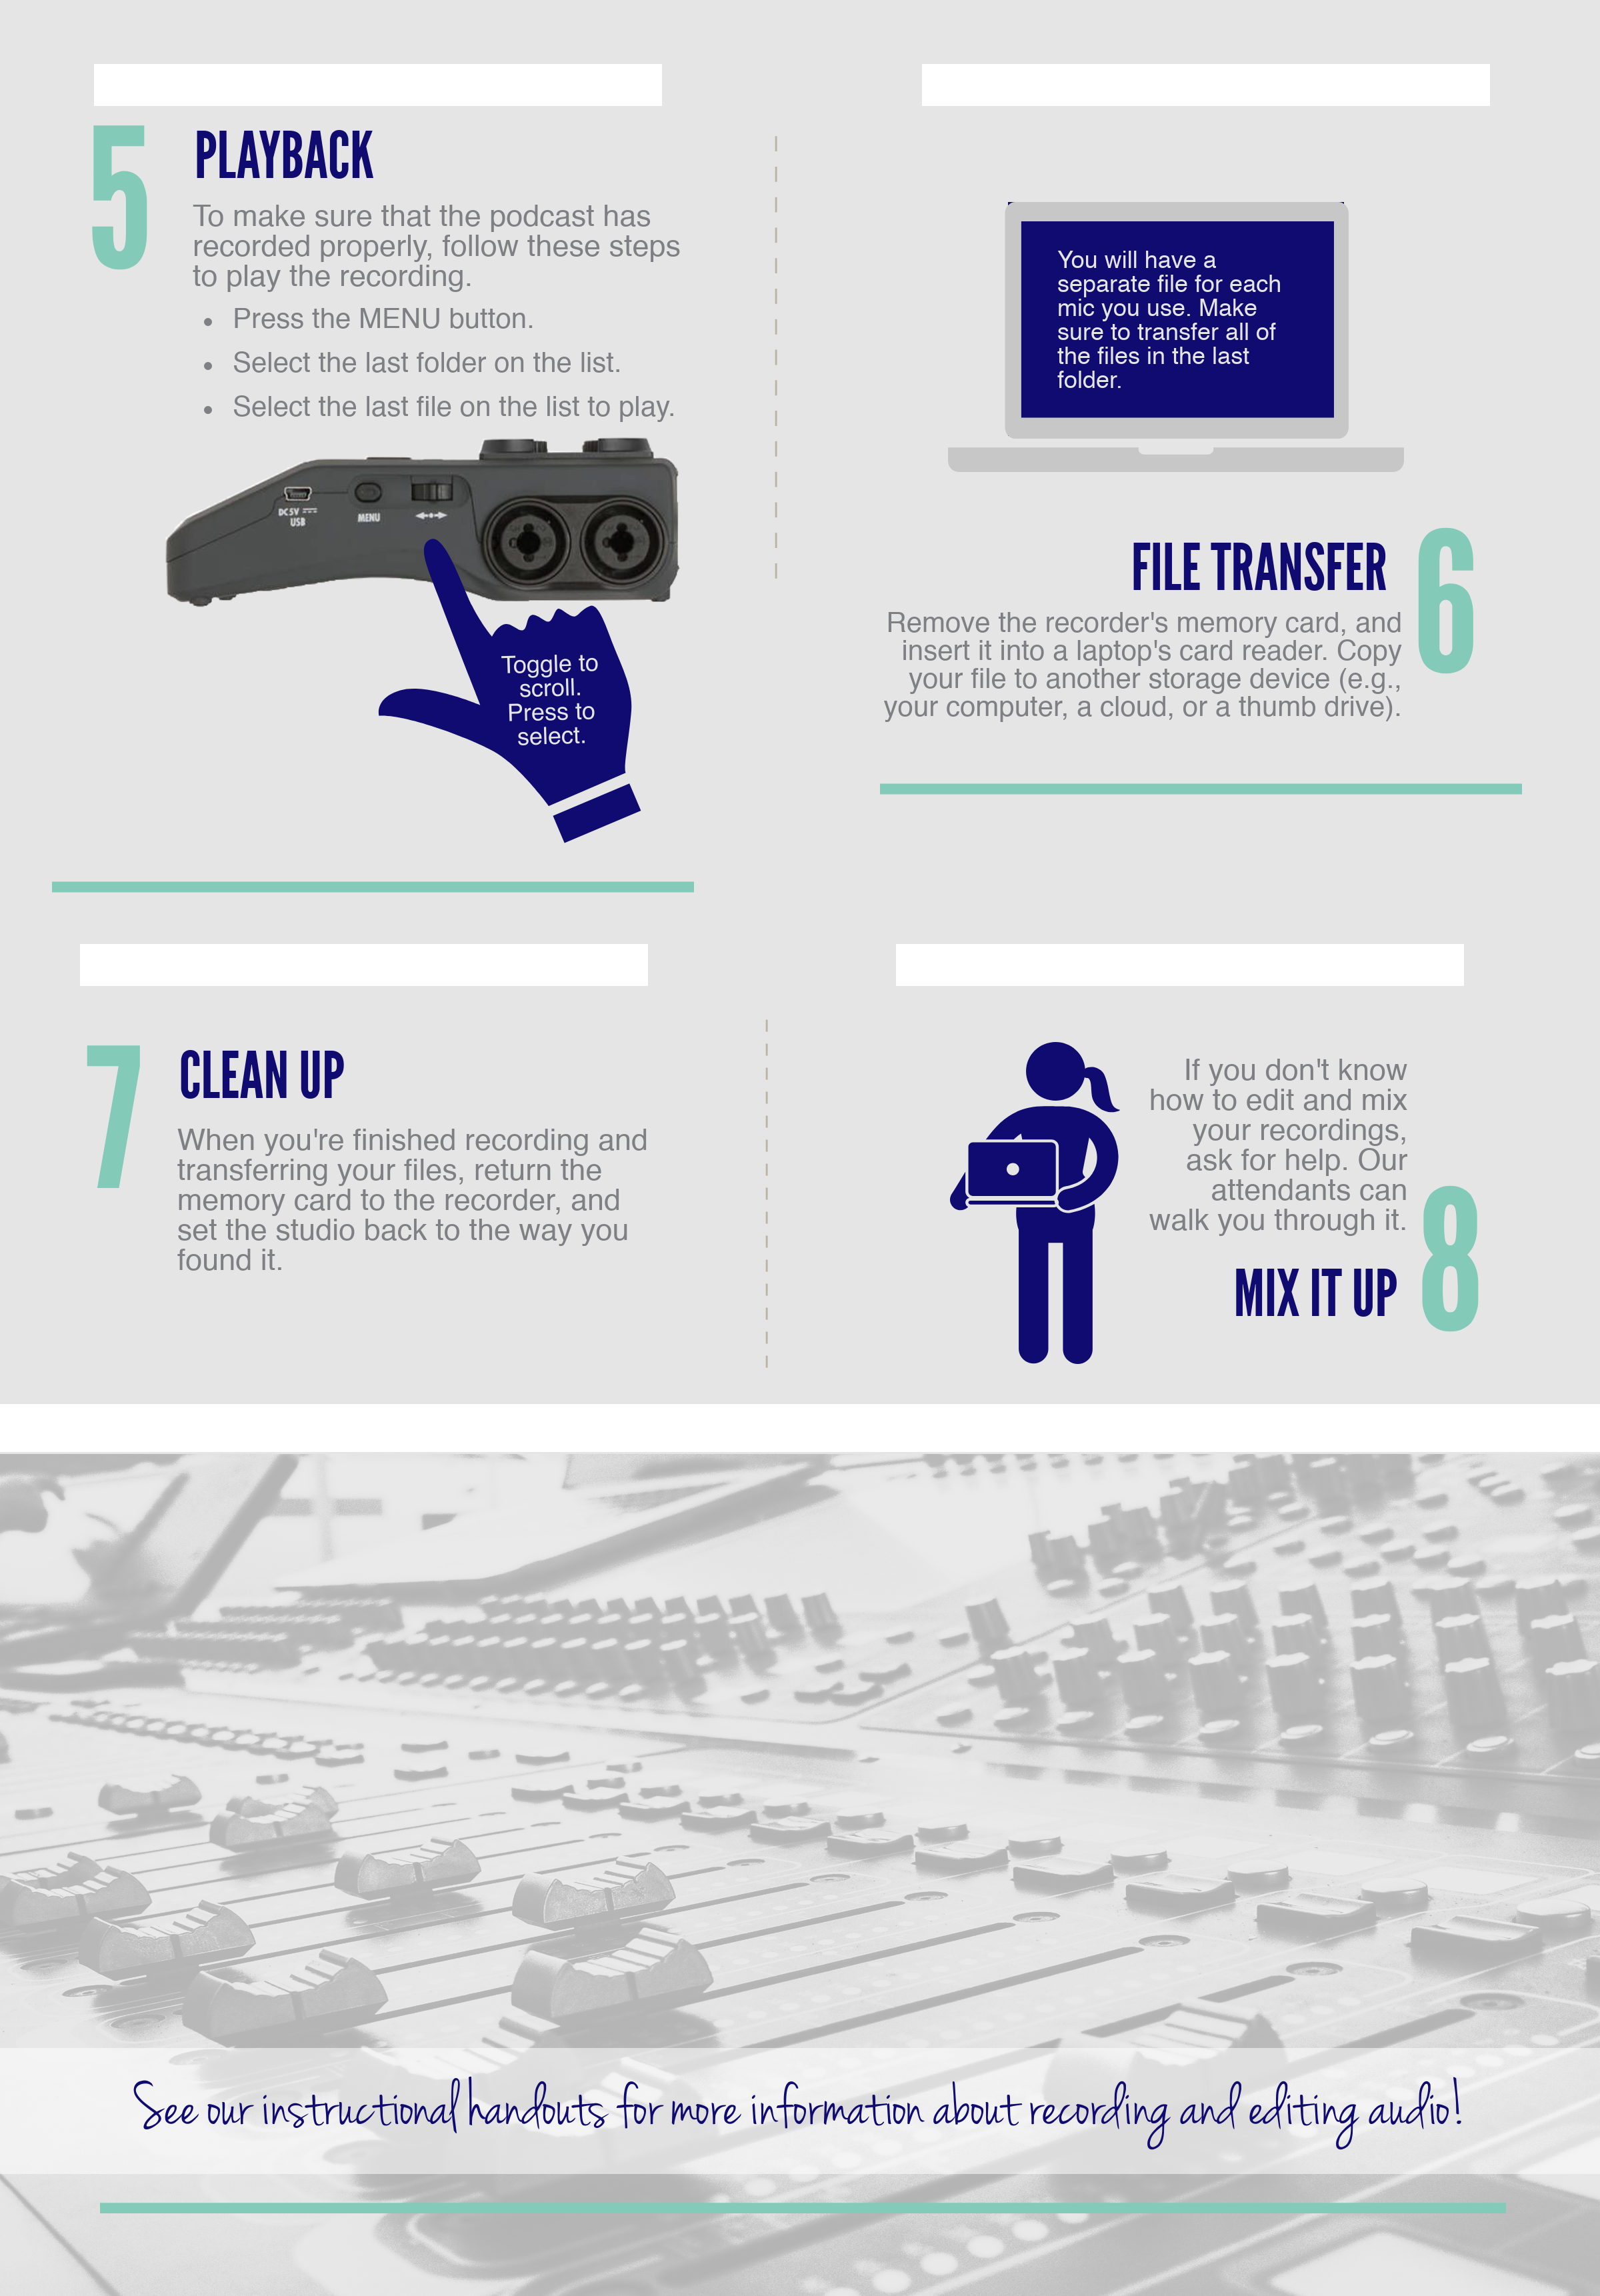 Part 2 of our guide to recording in the sound booth in DPH 216.